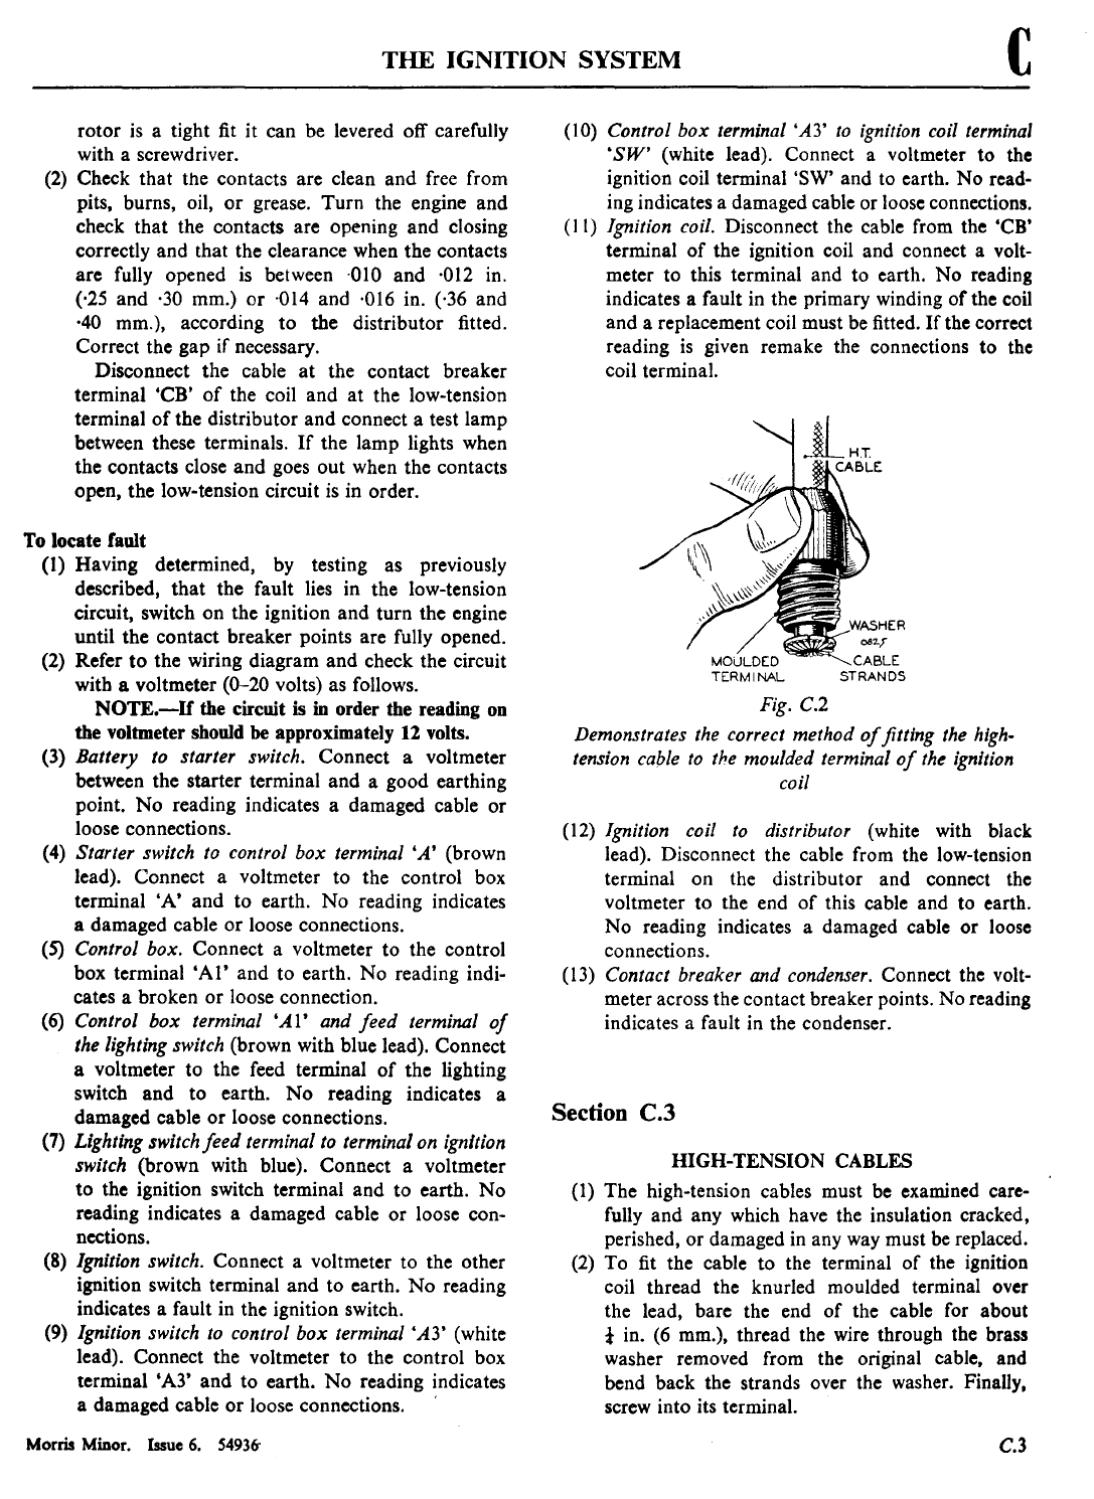 Morris Minor Service Manual By Oxford Issuu Wiring Diagram